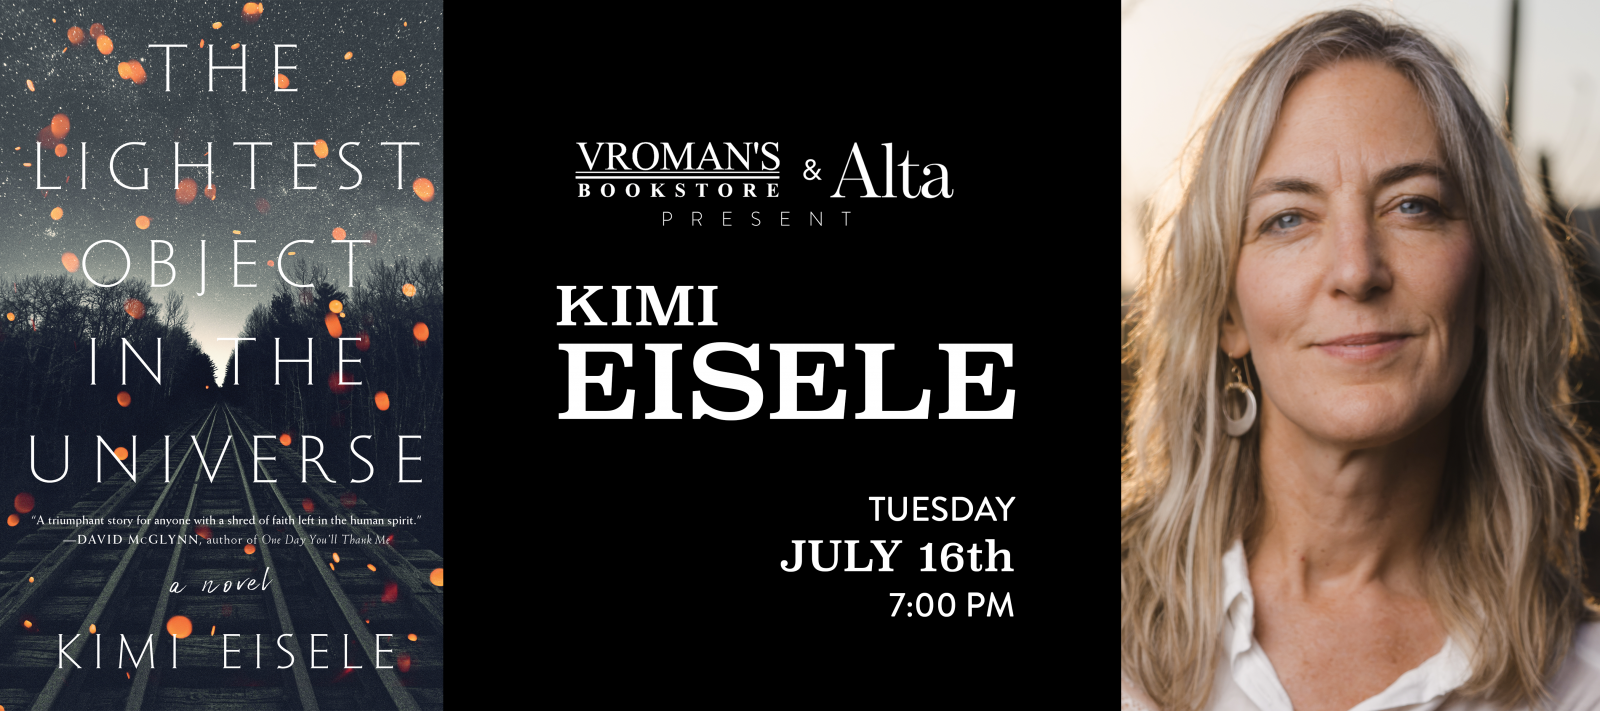 Kimi Eisele book signing Tuesday July 16th at 7pm